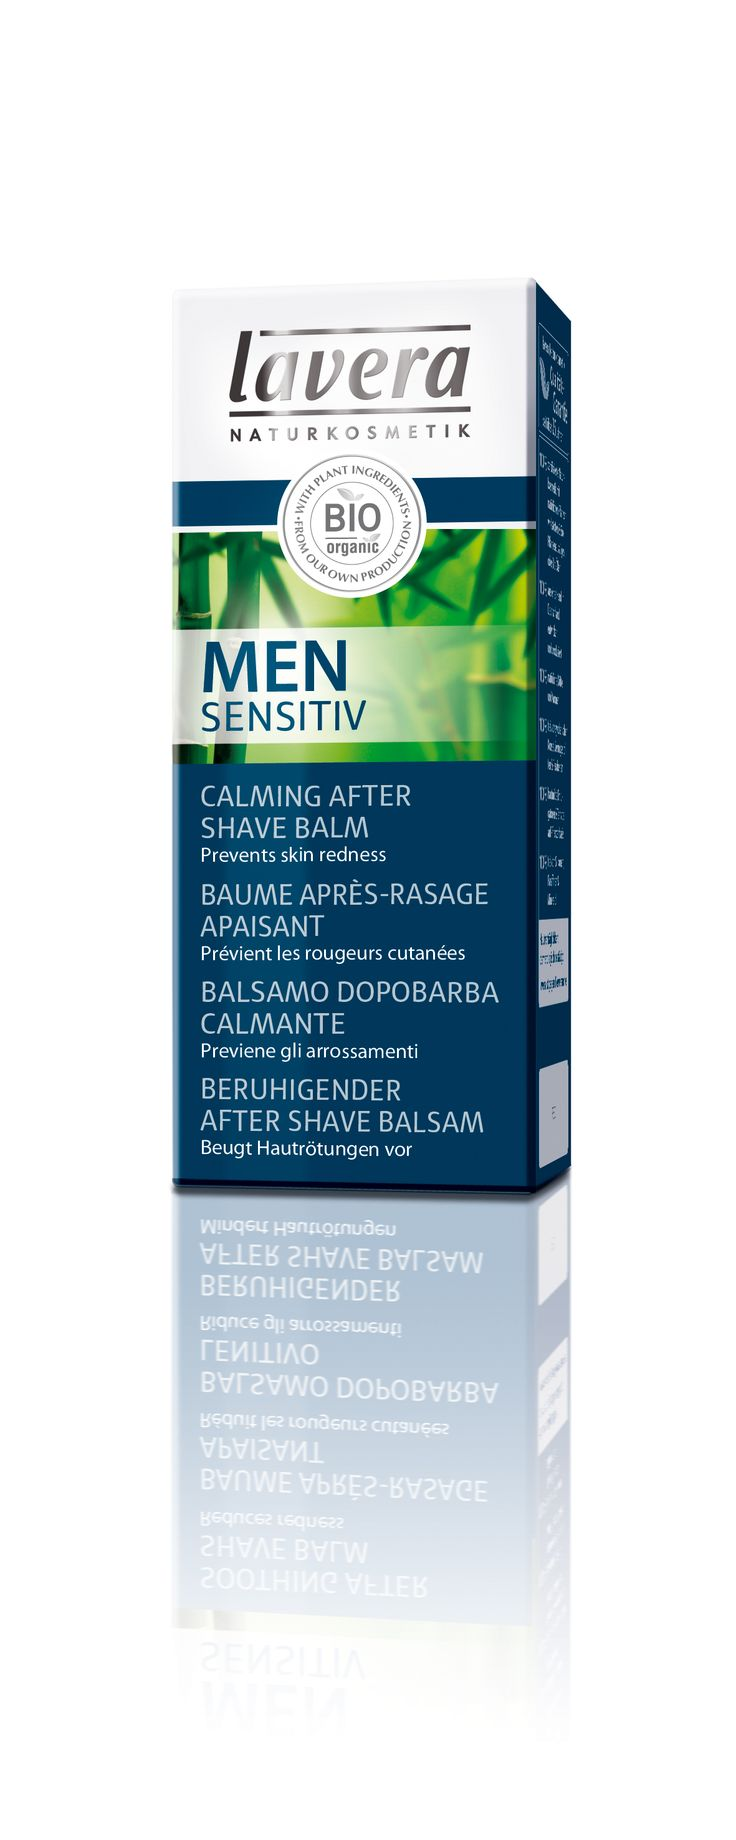 NEW Men Sensitiv Range from Lavera - Men Sensitiv After Shave Balm will keep male skin soft and smooth without irritation or redness after shaving. This After Shave Balm has a refreshing zesty fragrance which absorbs into skin creating soft, soothed and cared for skin. Contains organic and natural ingredients. View the full range at www.lavera.co.uk